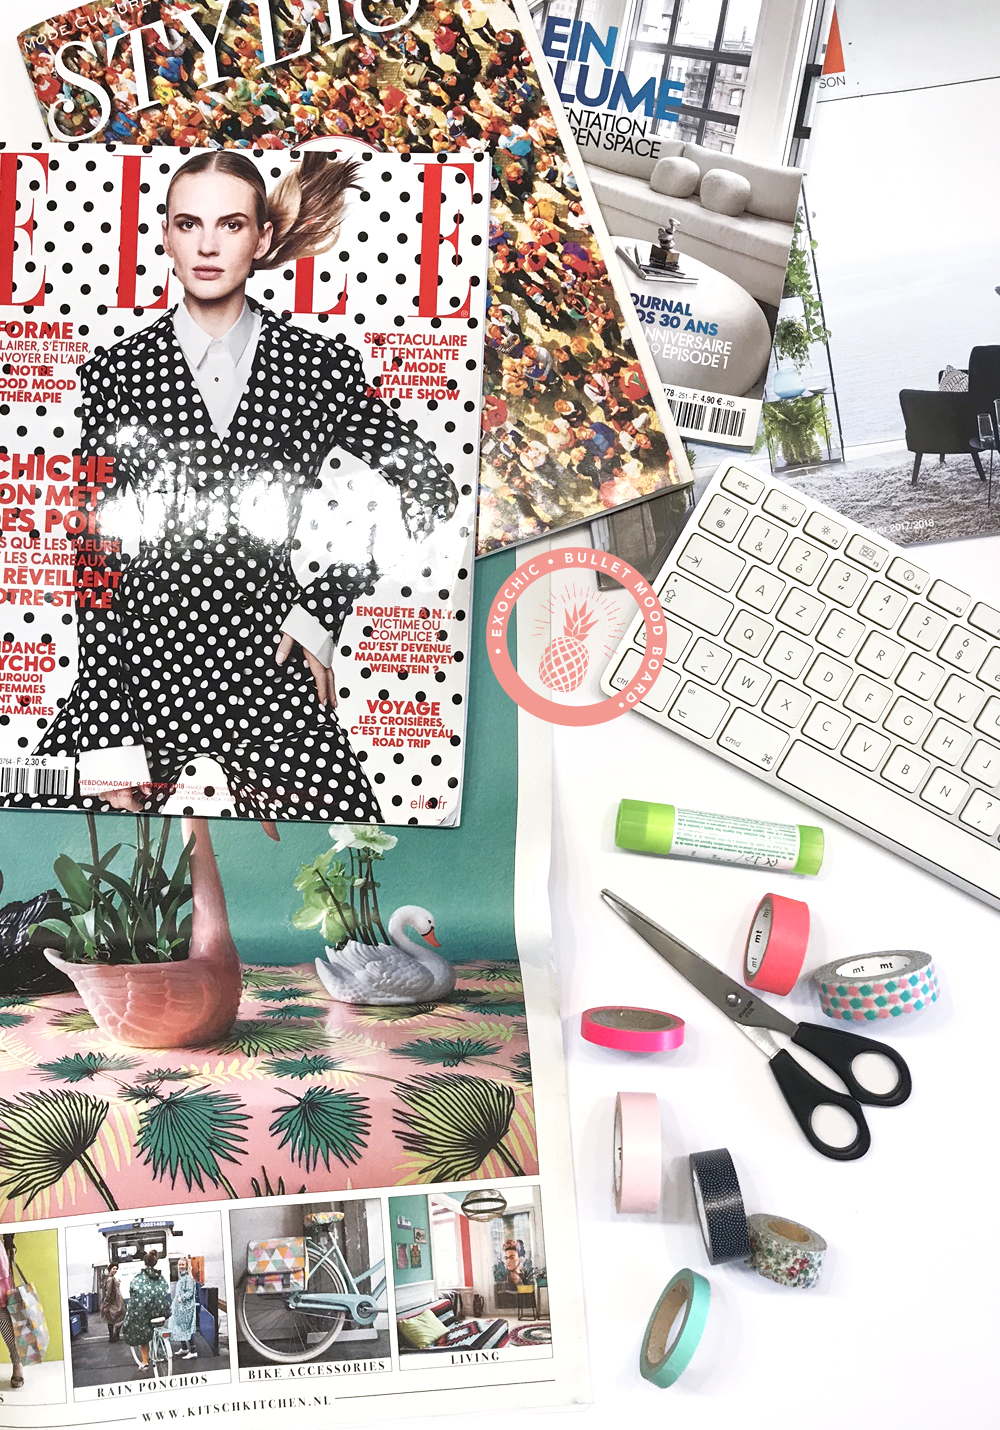 Air Chic Design:disque externe:EXOChic:1 -POSTS:1 - ARTICLES:2018:03 - MARS:03 Vision BOARD:Image blog:Bullet mood board exochic.jpg